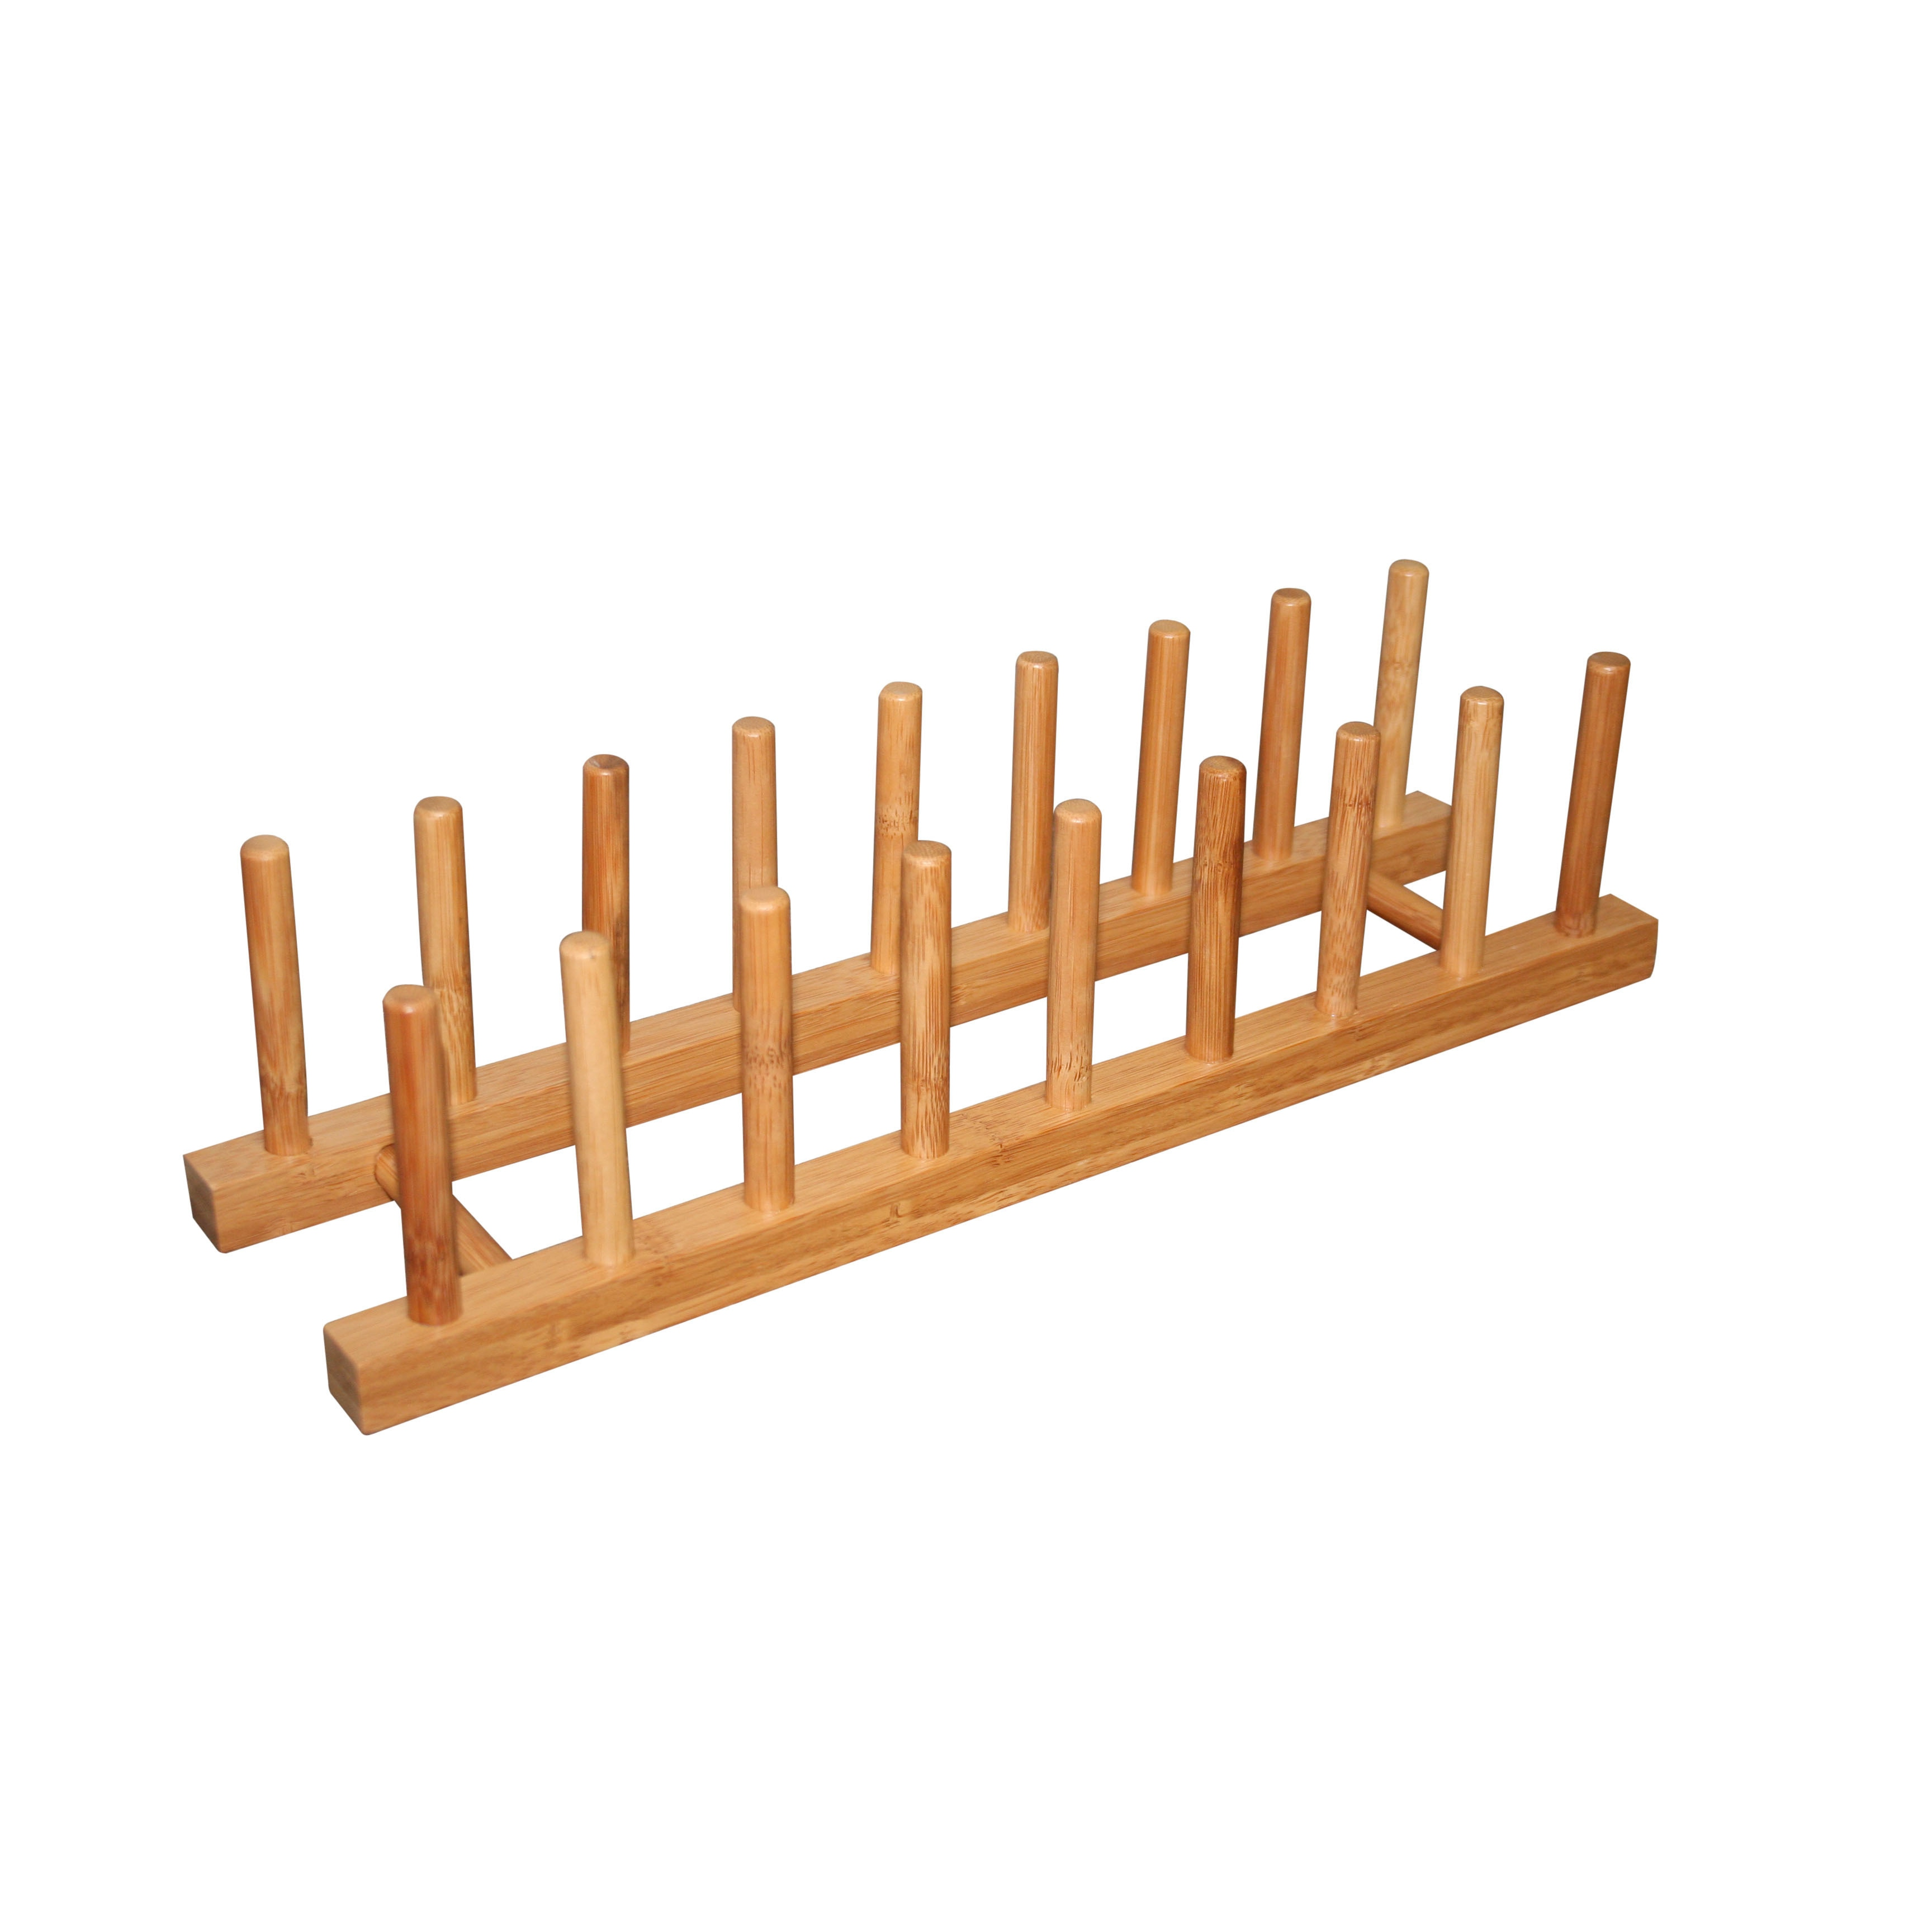 Bamboo (Green) Dish Rack for Plates and Pot Lids (Wood)